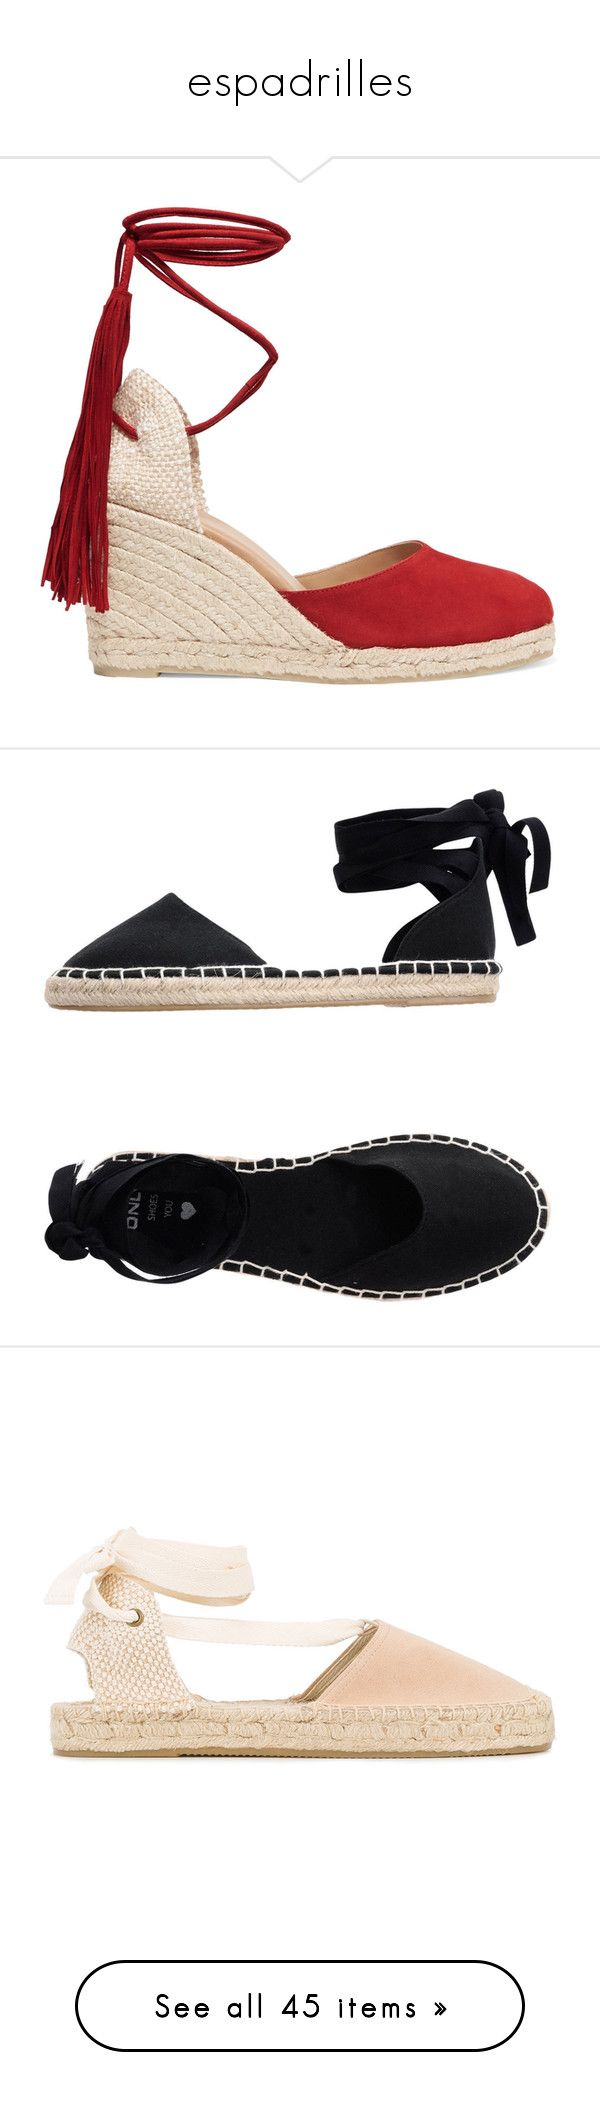 """""""espadrilles"""" by hello-crazy ❤ liked on Polyvore featuring shoes, sandals, heels, wedges, heeled sandals, red suede sandals, red fringe sandals, espadrille wedge sandals, wedges shoes and black"""